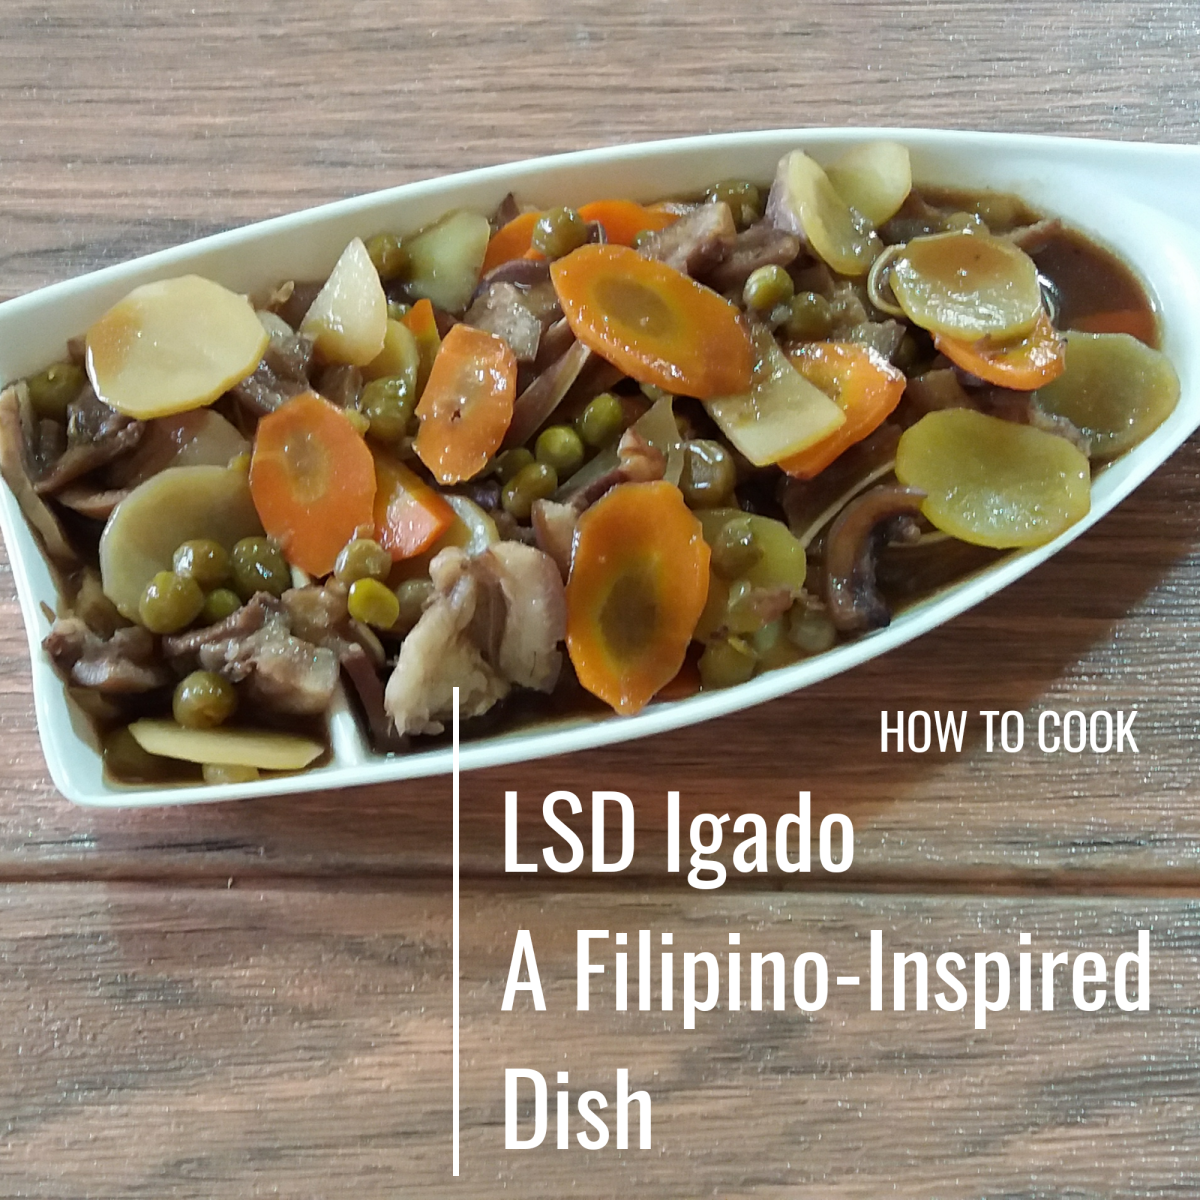 How to cook LSD igado, a Filipino dish